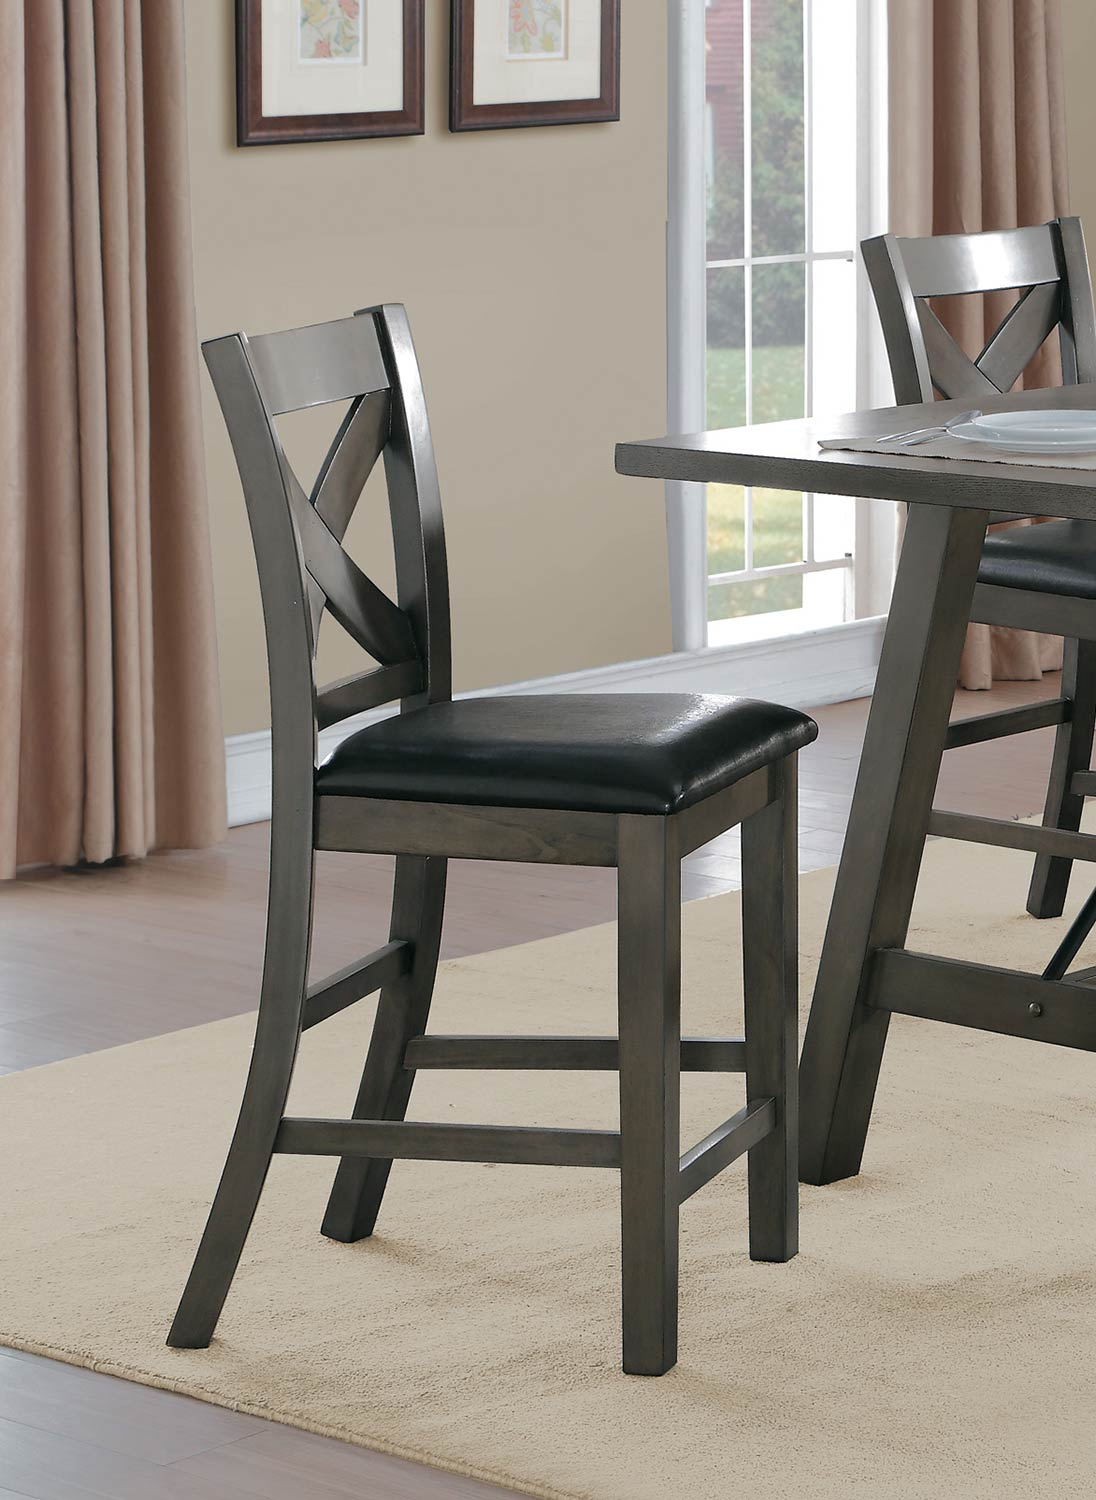 Homelegance Seaford X-Back Counter Height Chair - Gray tone